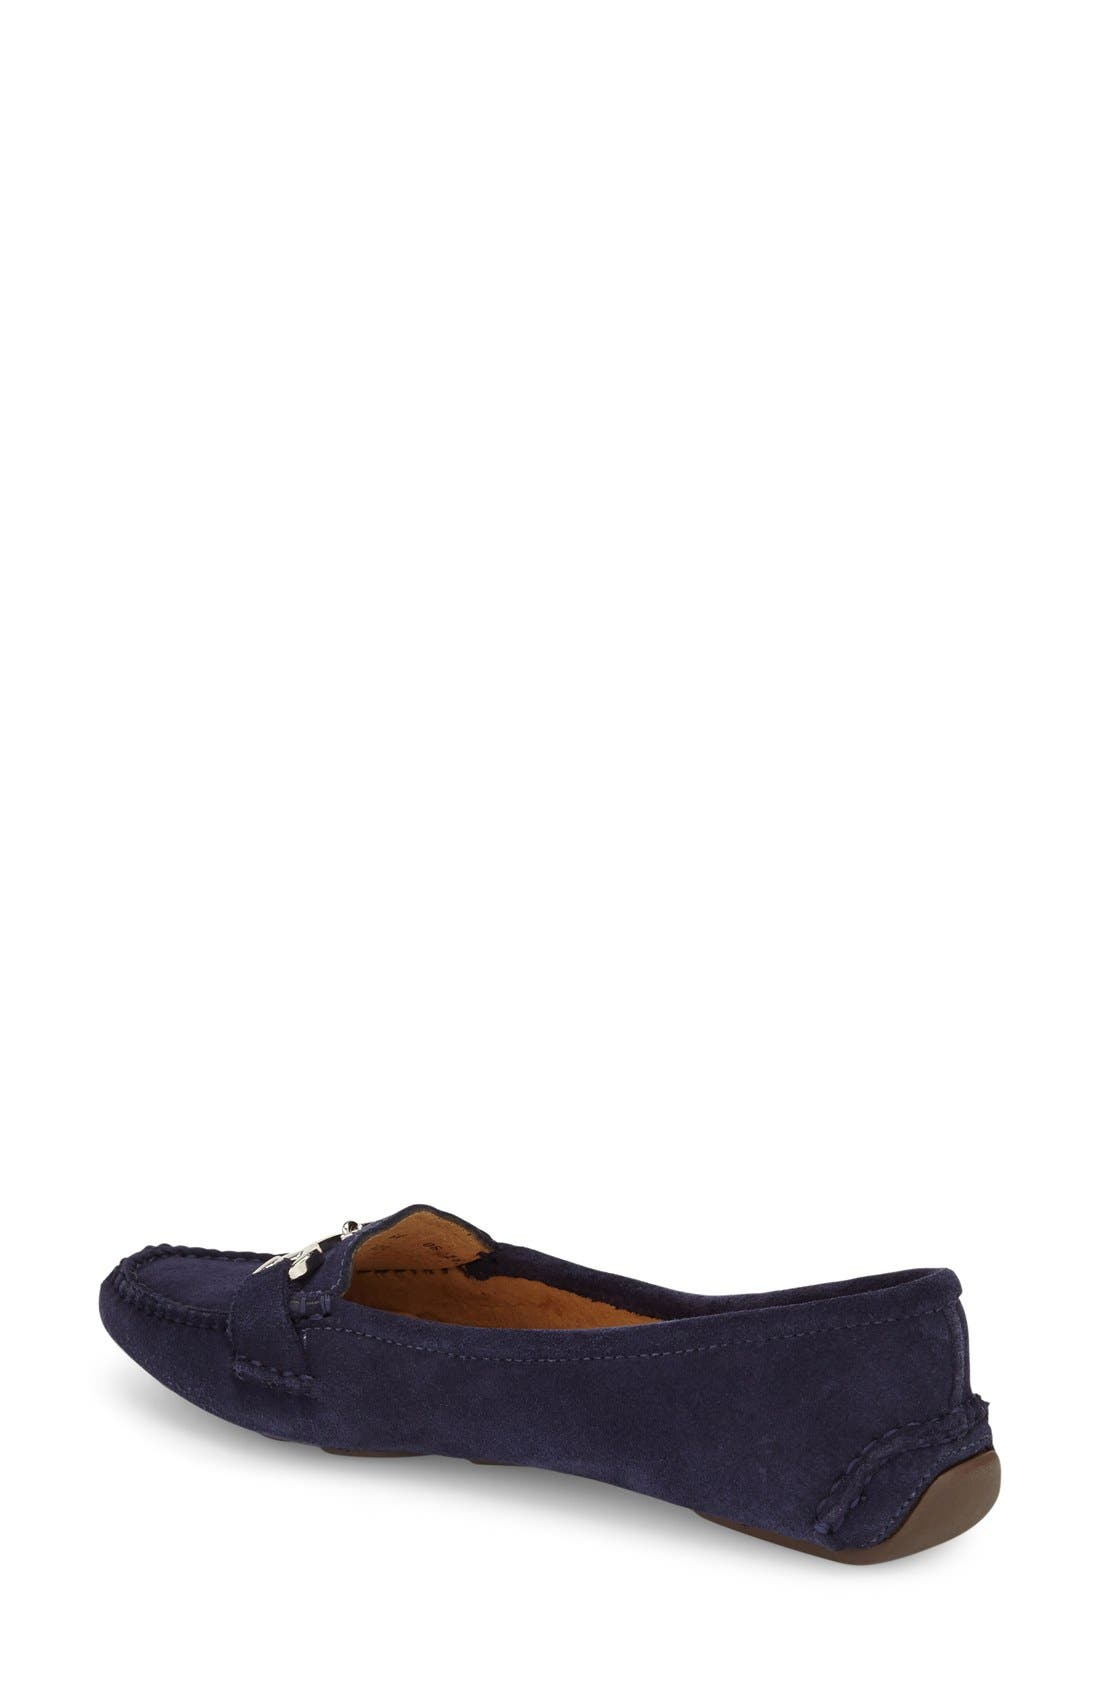 'Carrie' Loafer,                             Alternate thumbnail 2, color,                             Navy Suede